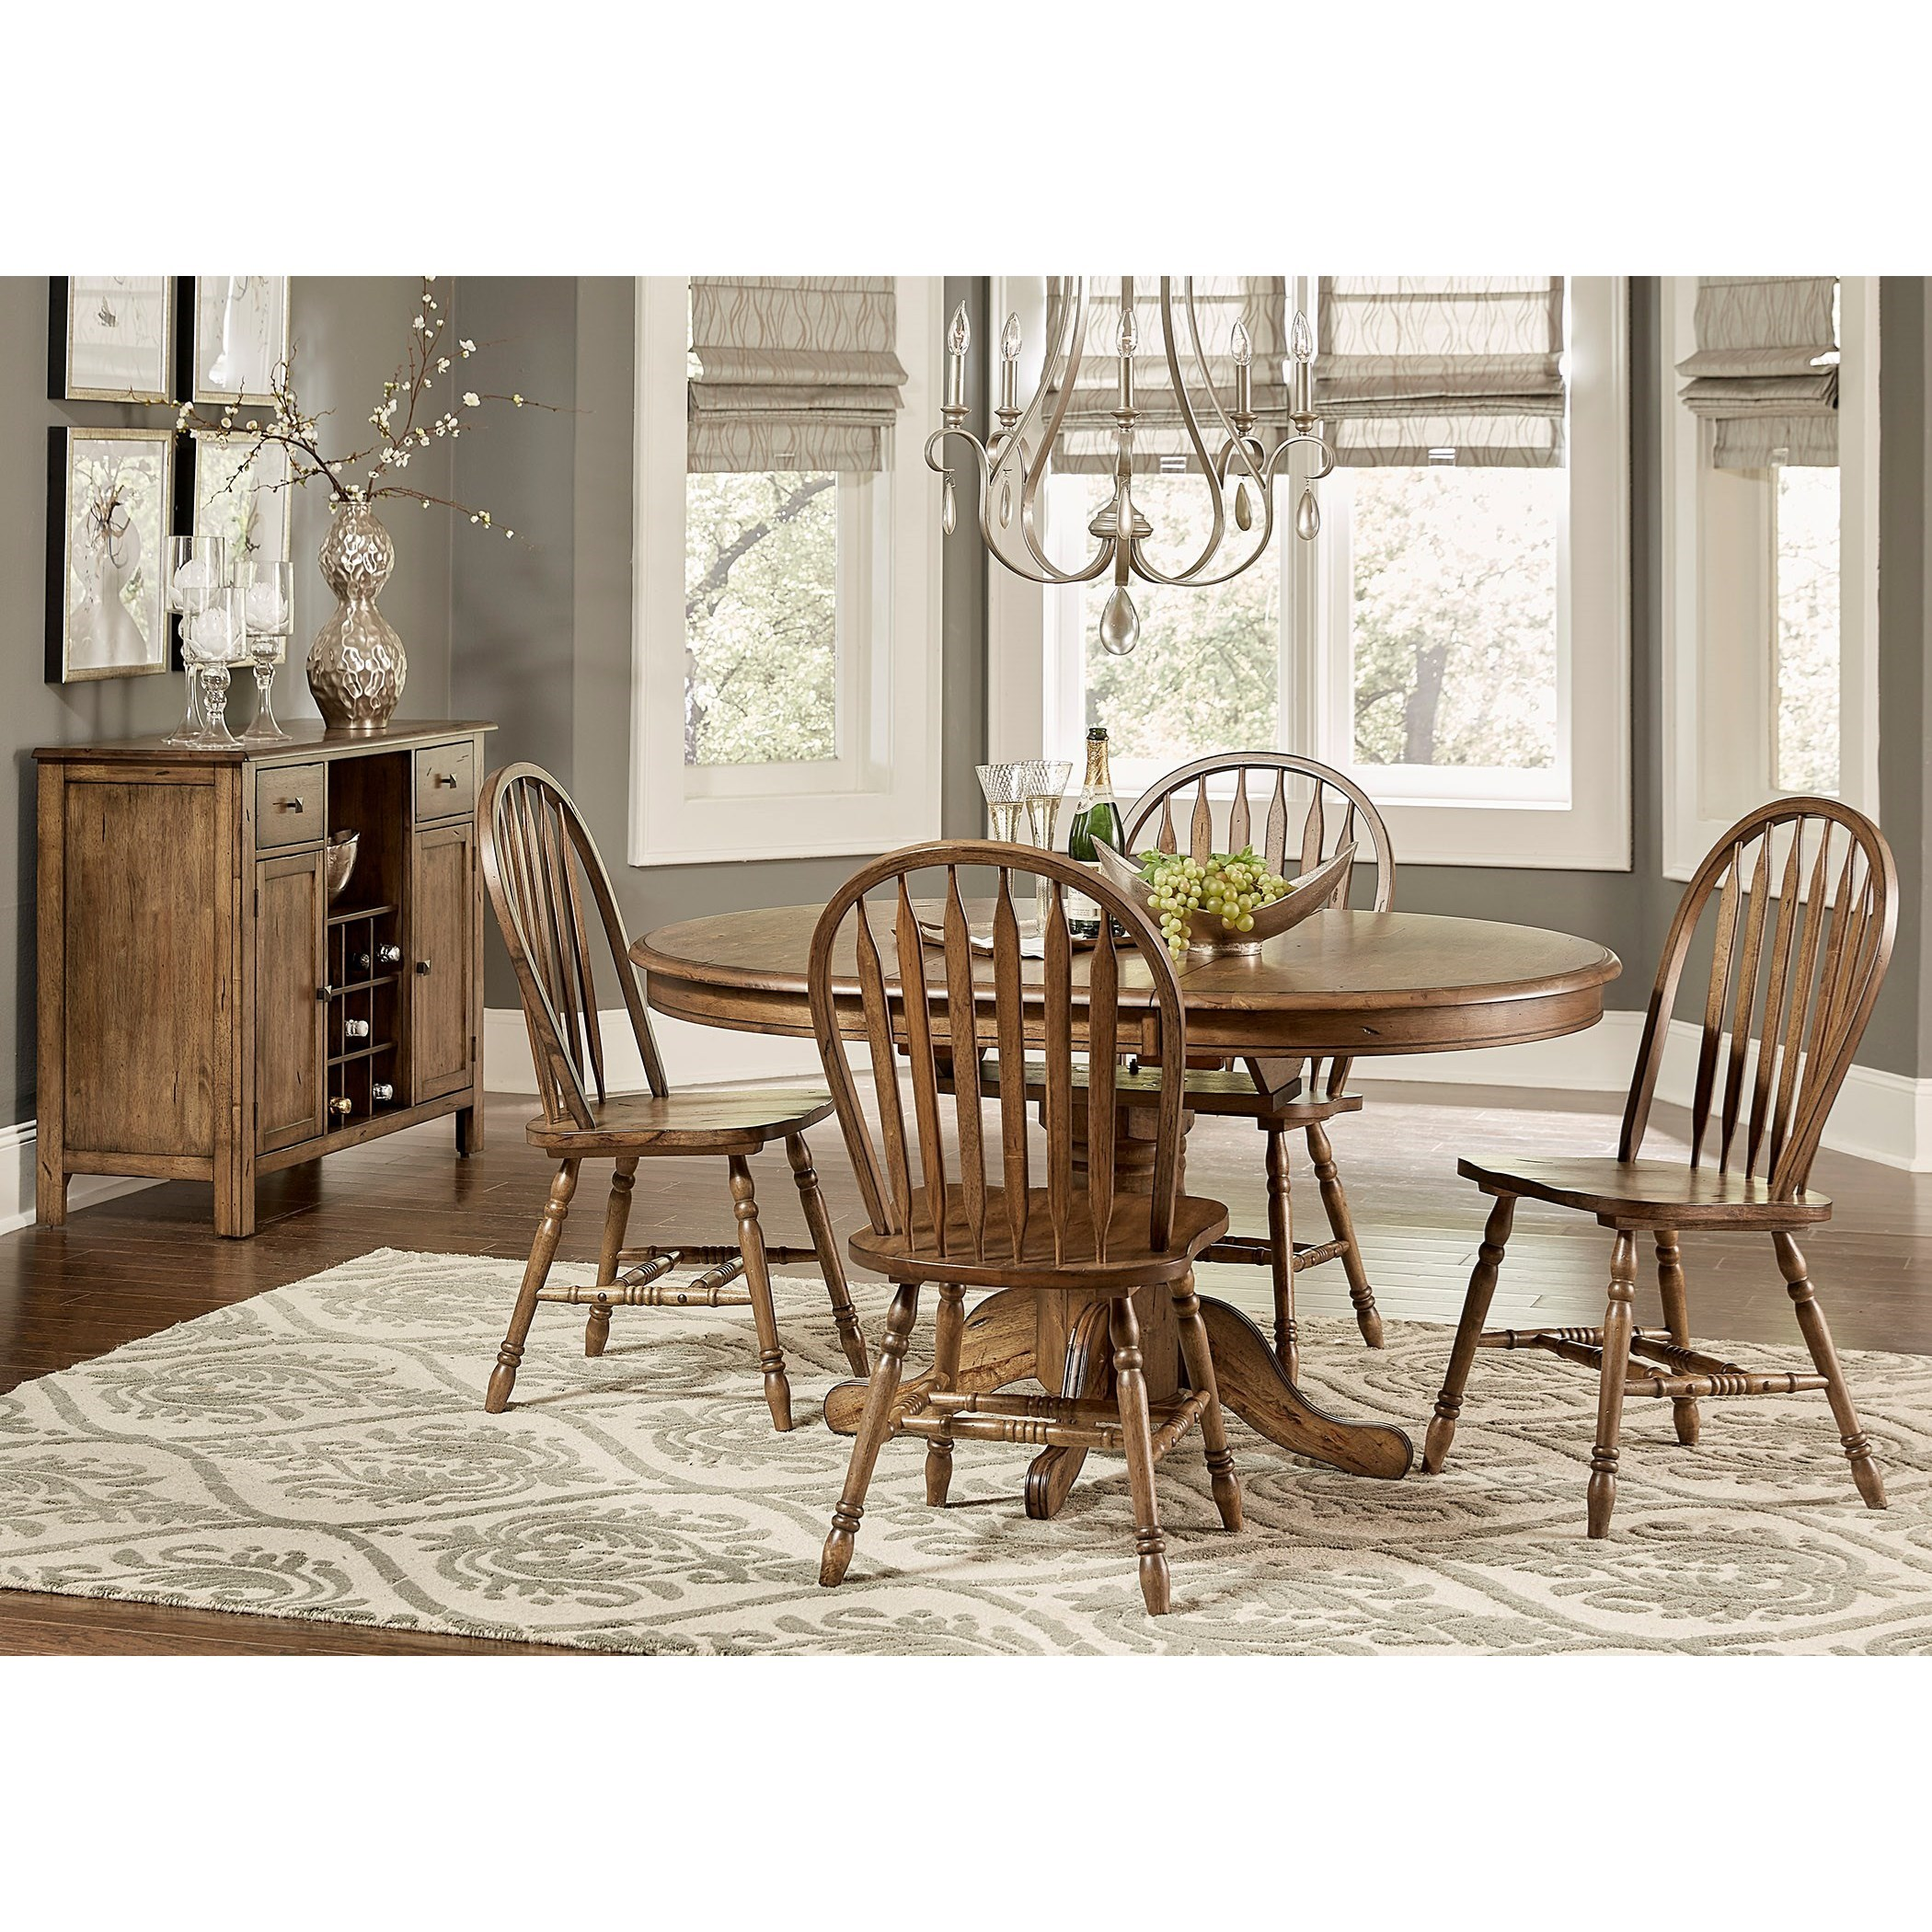 Carolina Crossing Casual Dining Room Group by Liberty Furniture at Story & Lee Furniture